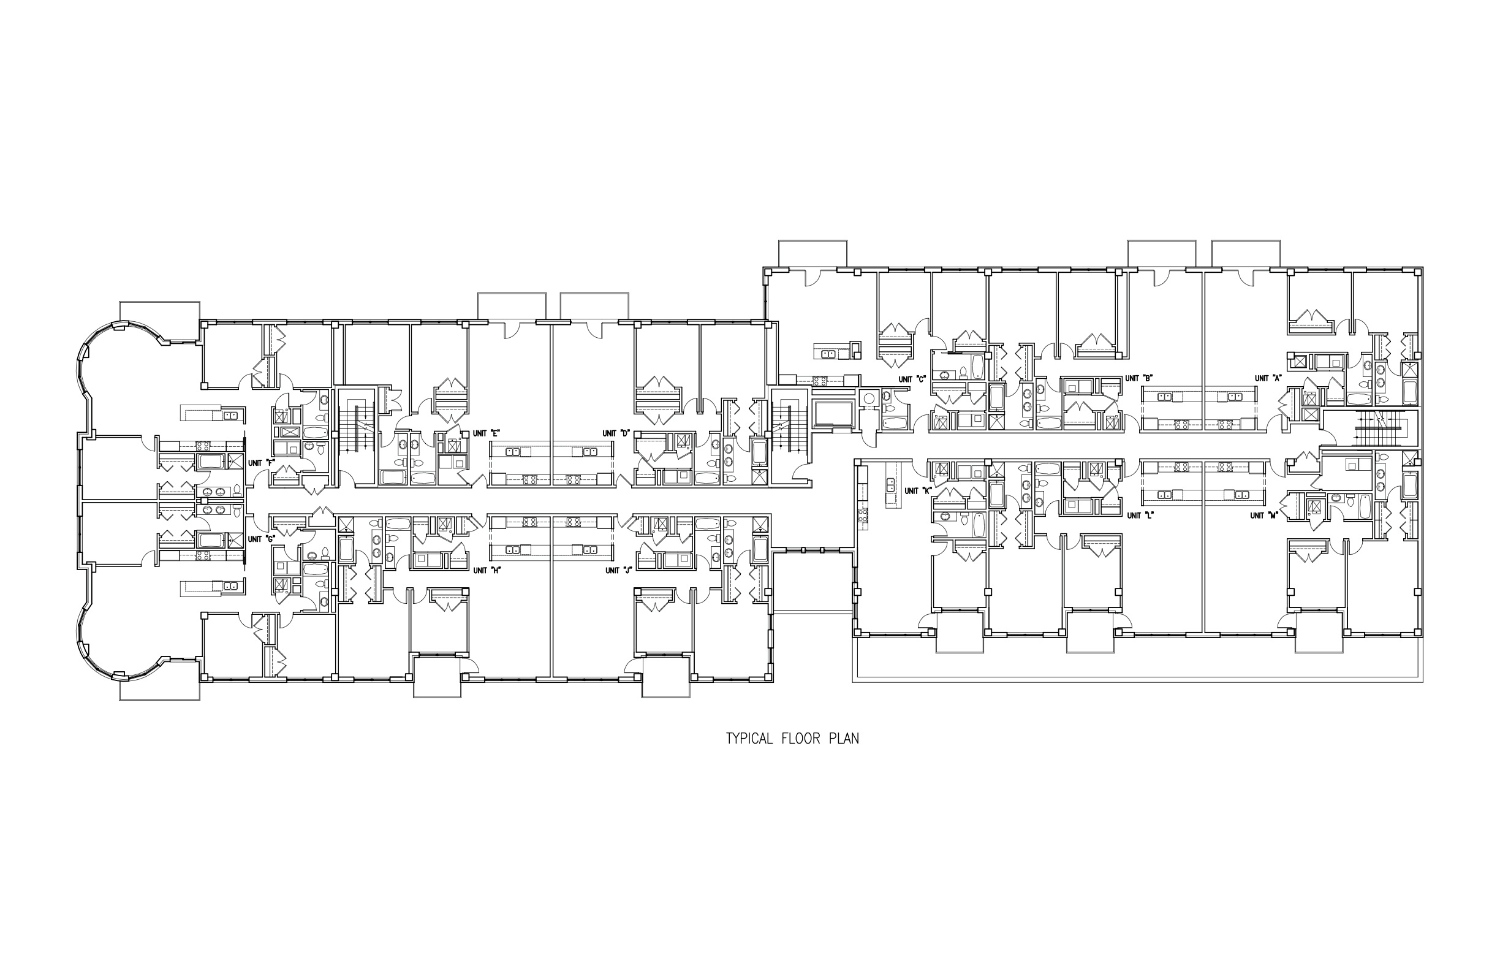 Typical Floor Plan_edited